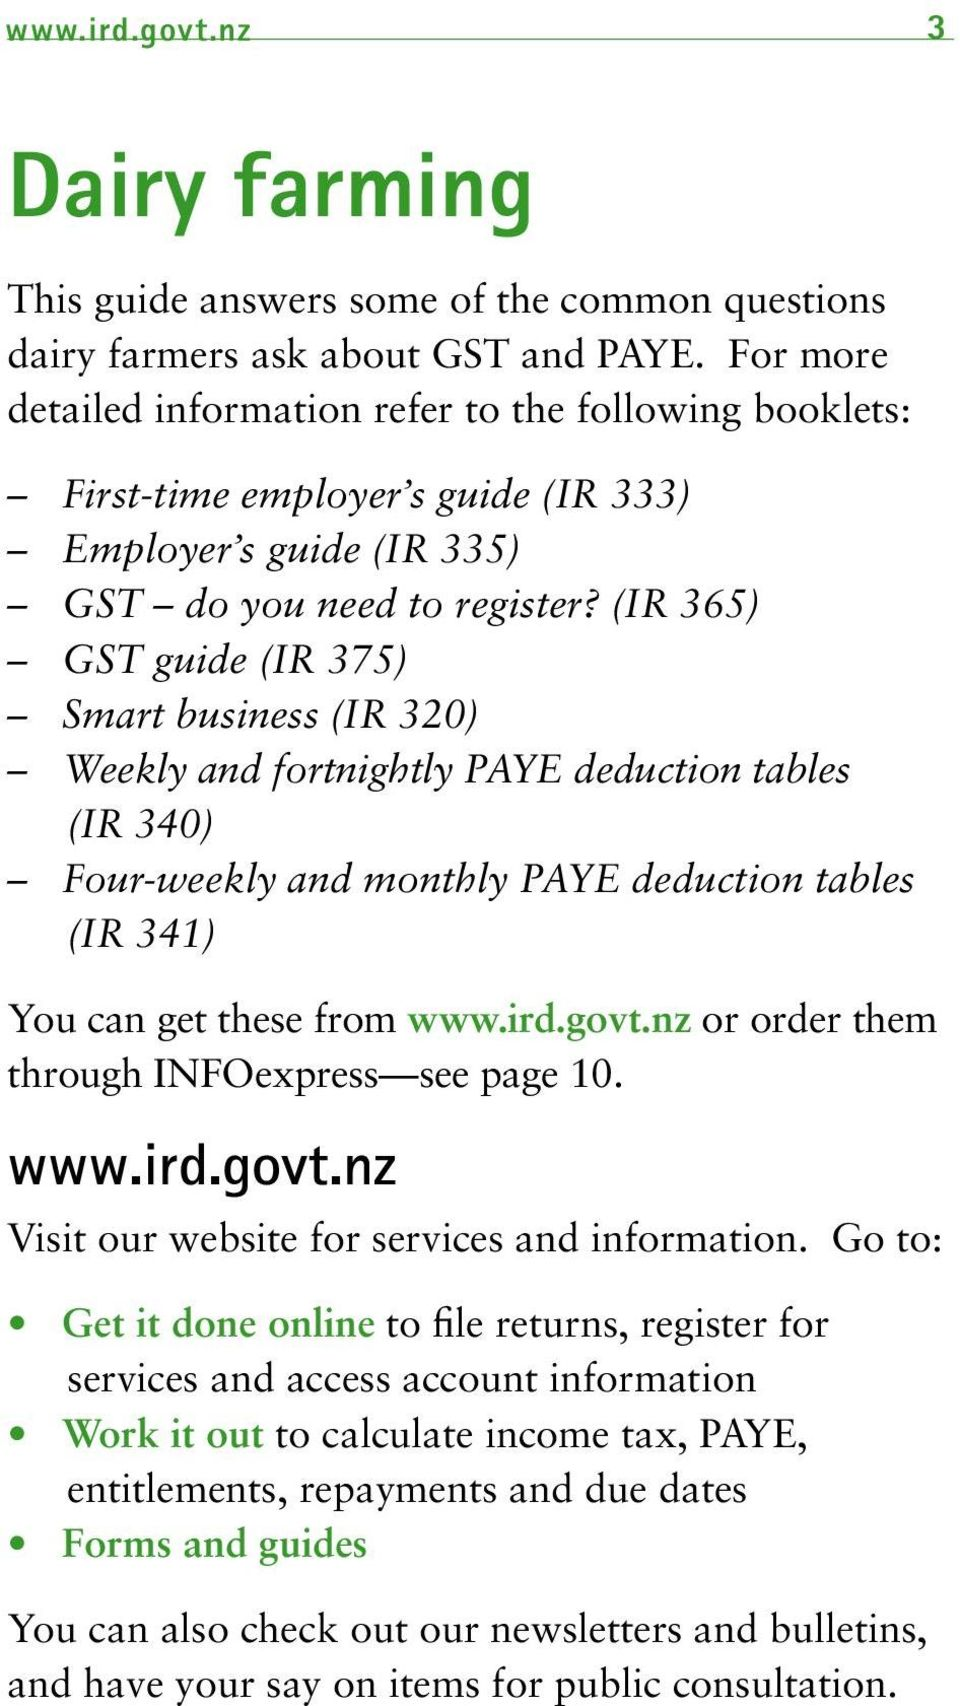 (IR 365) GST guide (IR 375) Smart business (IR 320) Weekly and fortnightly PAYE deduction tables (IR 340) Four-weekly and monthly PAYE deduction tables (IR 341) You can get these from www.ird.govt.